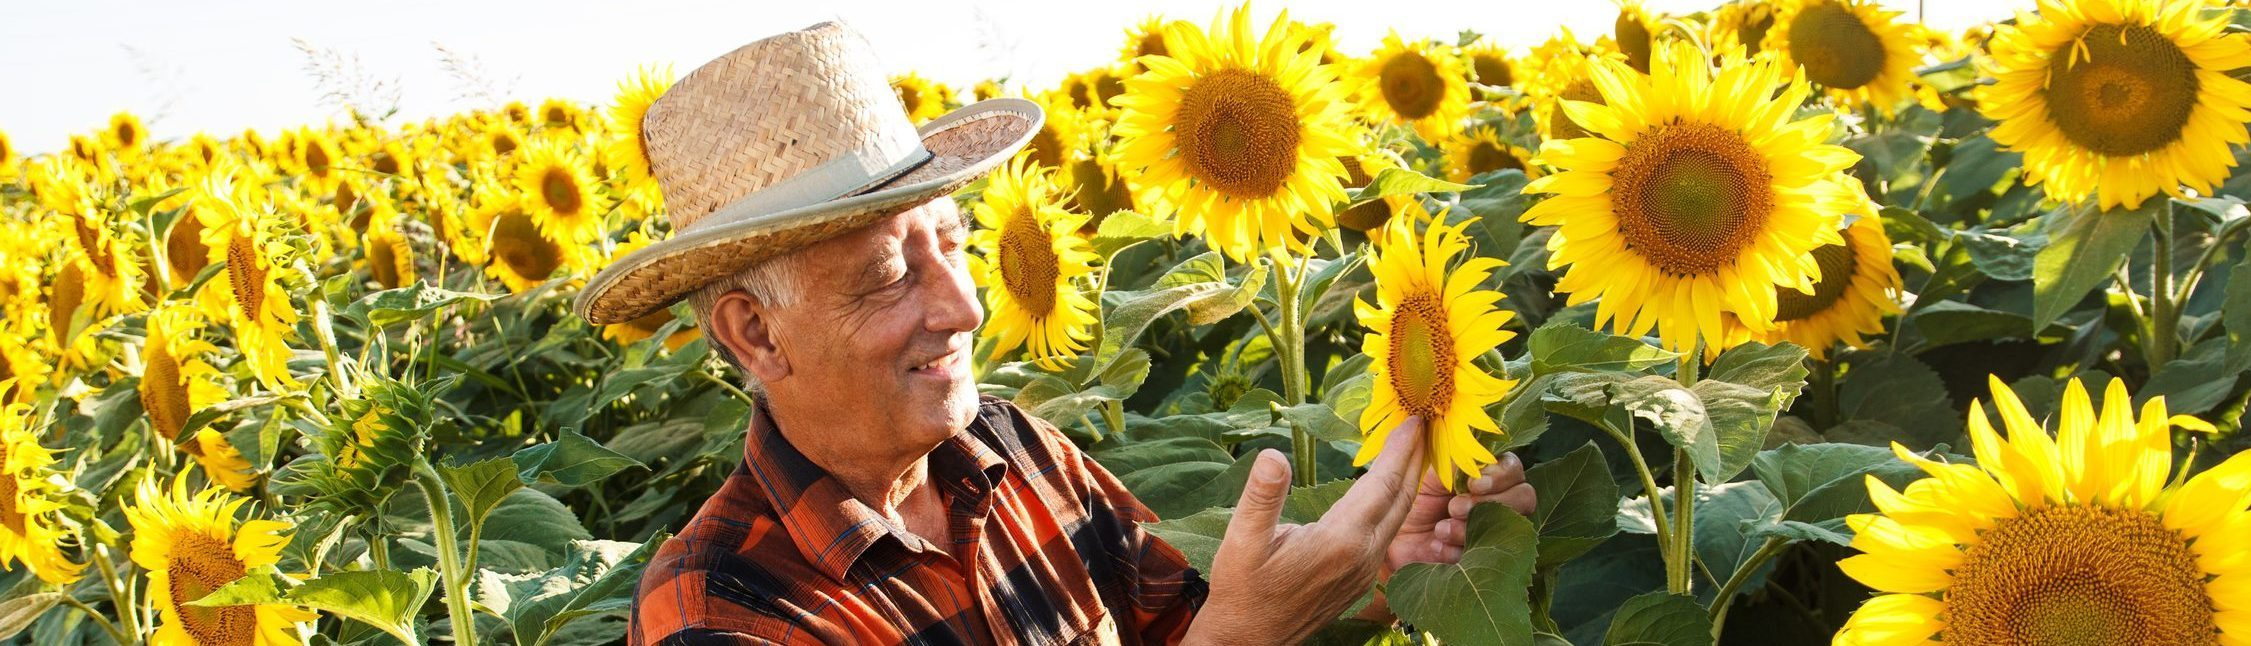 Senior farmer examining crop of sunflowers in field